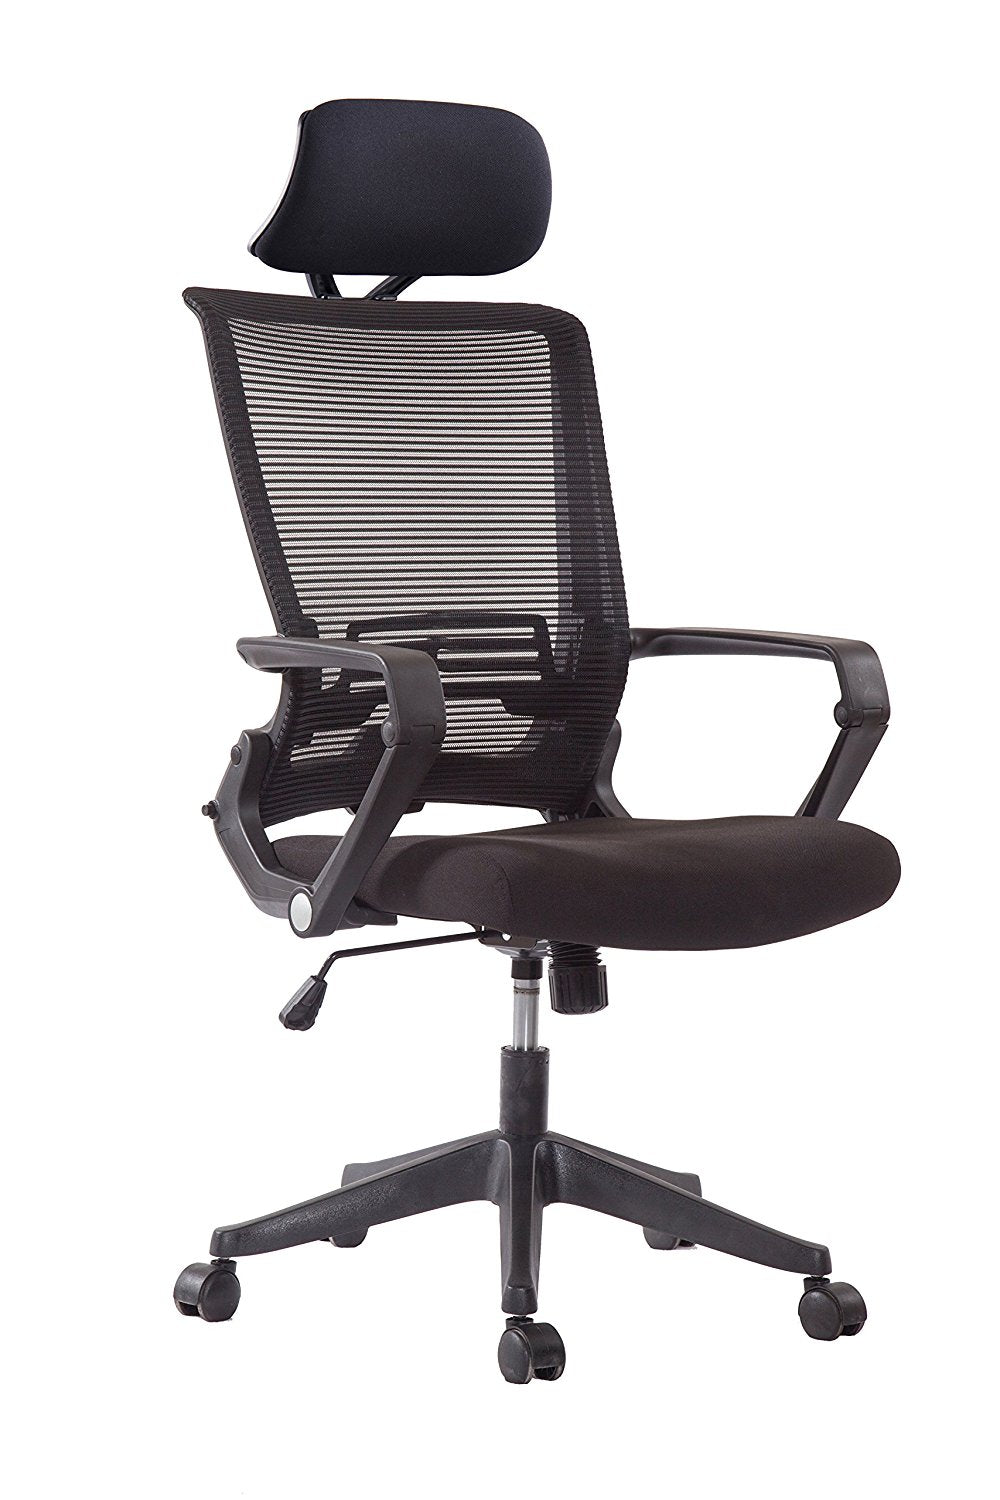 Ergo Hq Black Mesh Back Office Chair With Black Head Rest Black